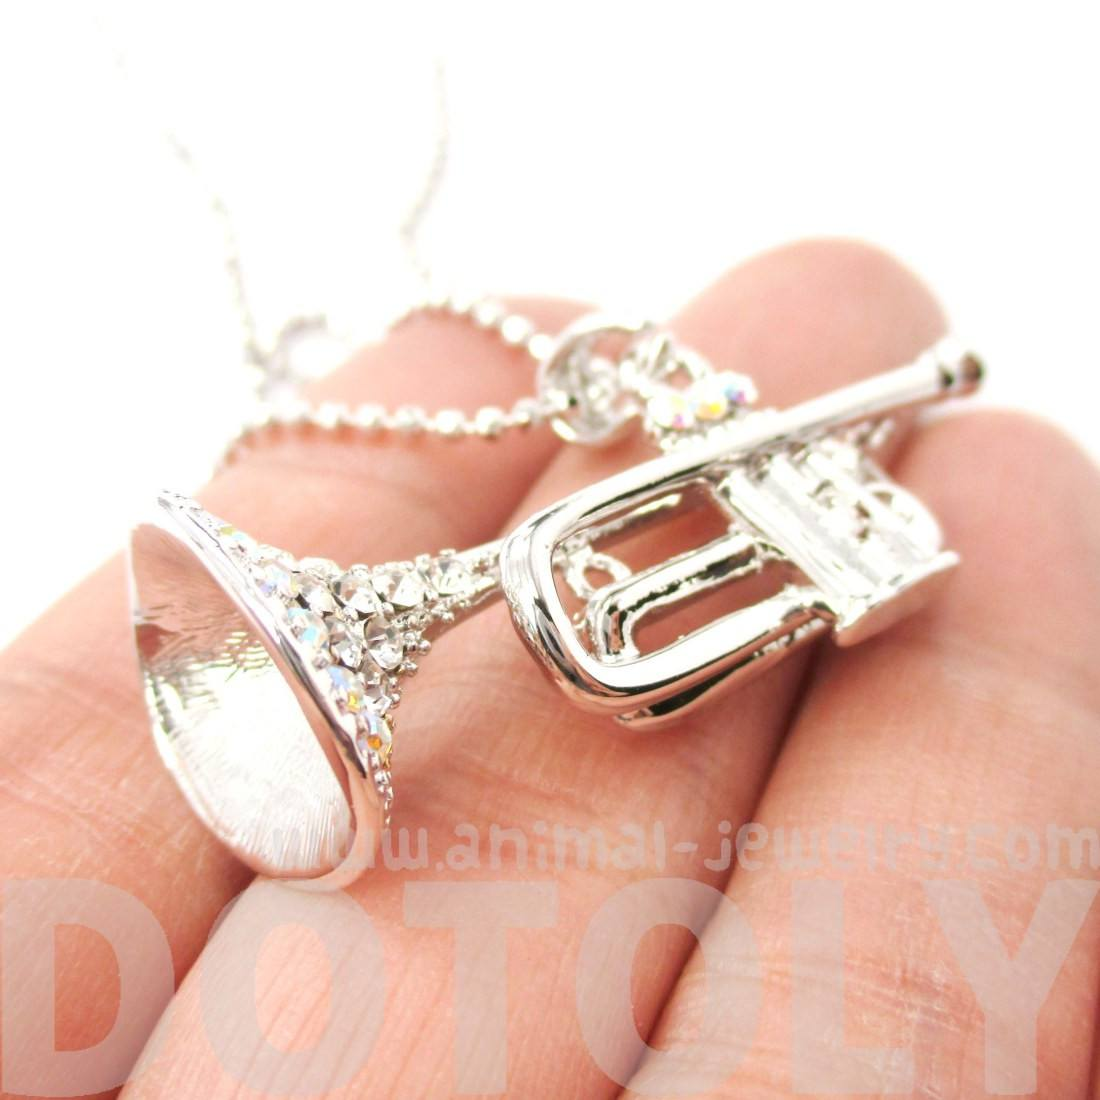 Trumpet Musical Instrument Pendant Necklace in Silver